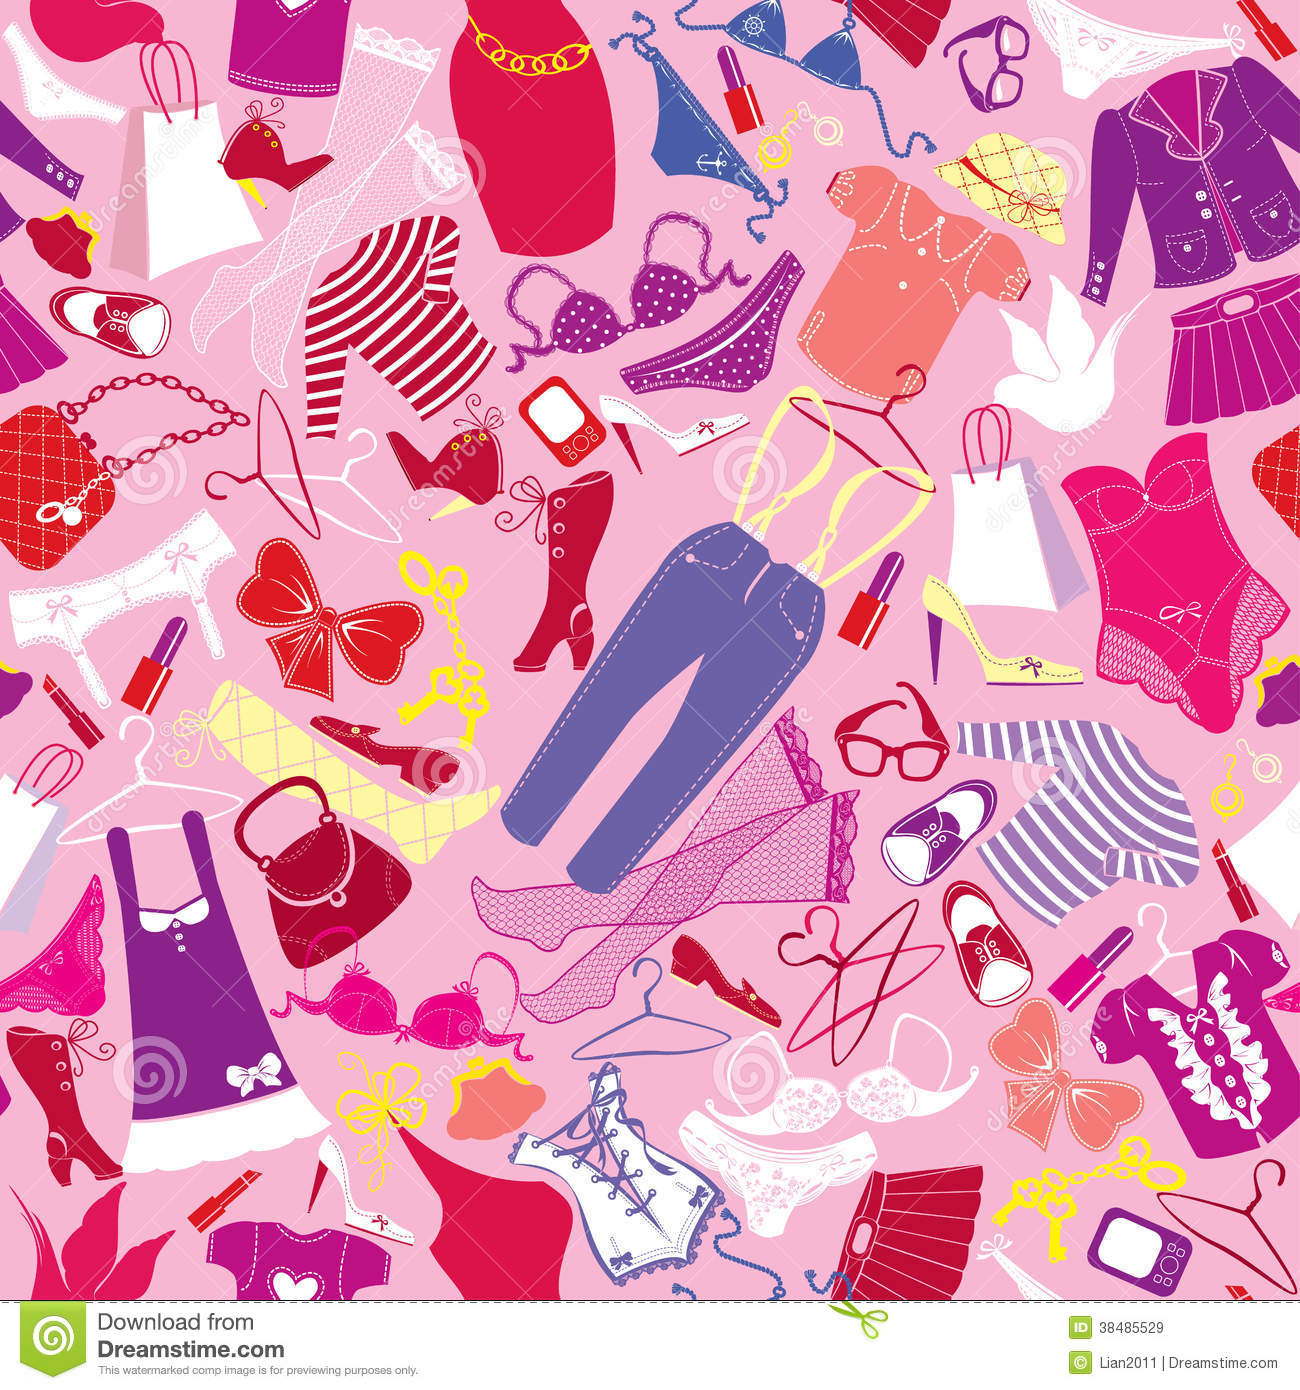 Cute Nail Arts Wallpaper Seamless Pattern For Fashion Design Silhouettes Royalty